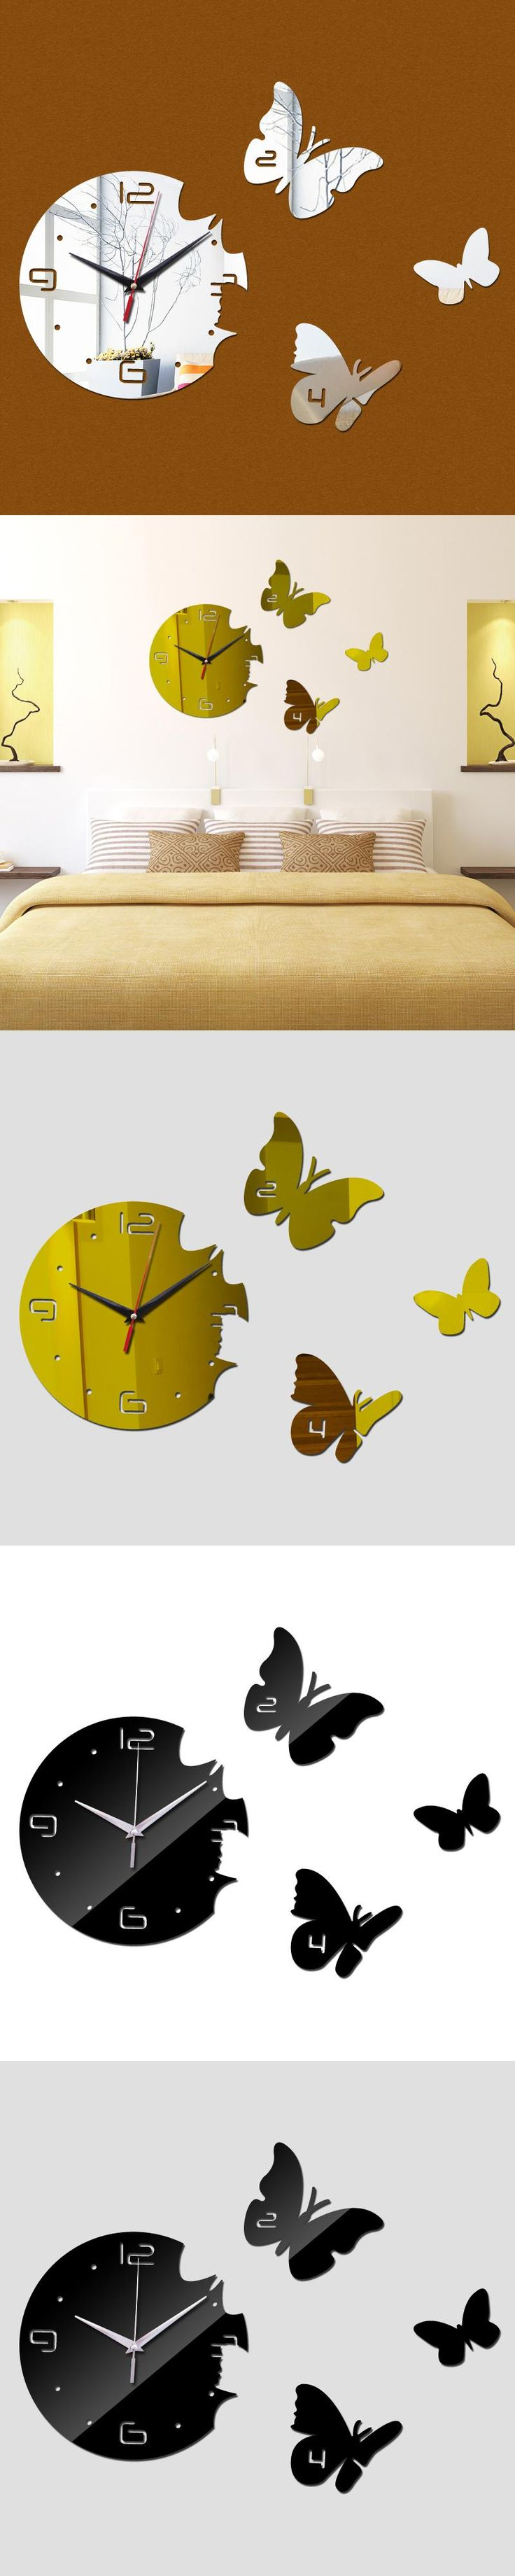 Best 25 large decorative wall clocks ideas on pinterest large free shipping new flying butterflies wall clock creative design home decor big mirror 3d diy large amipublicfo Image collections